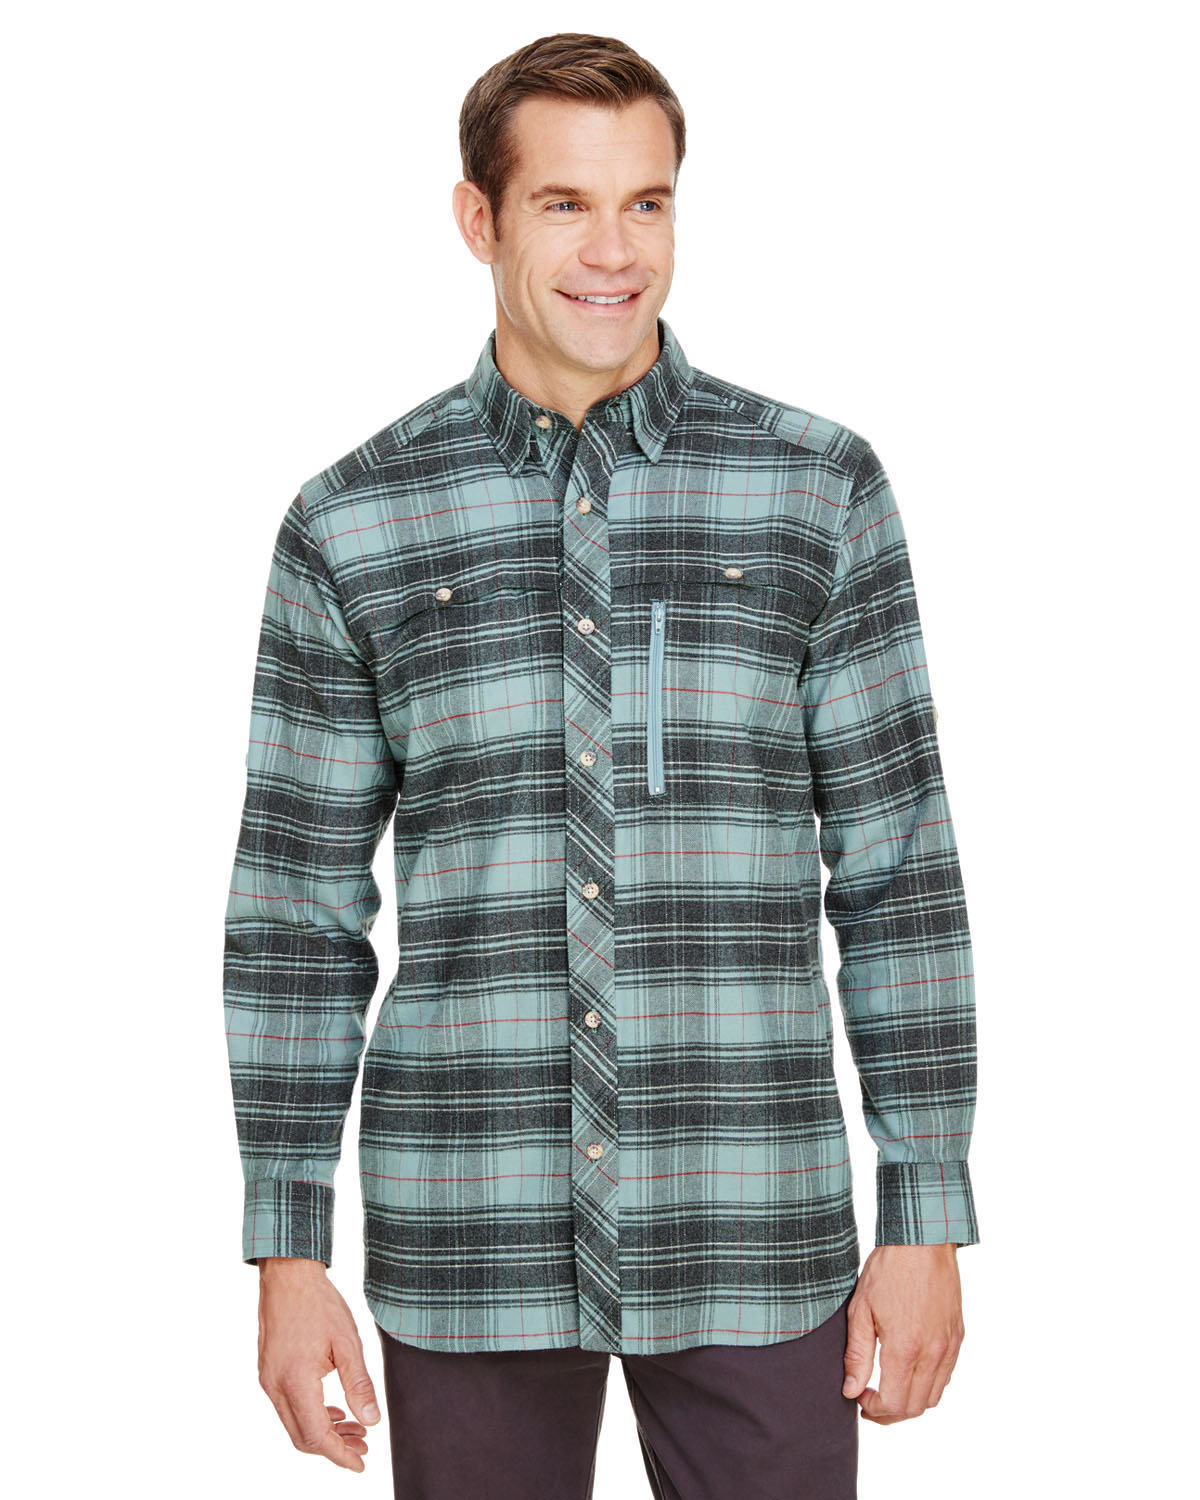 Men's Tall Stretch Flannel Shirt